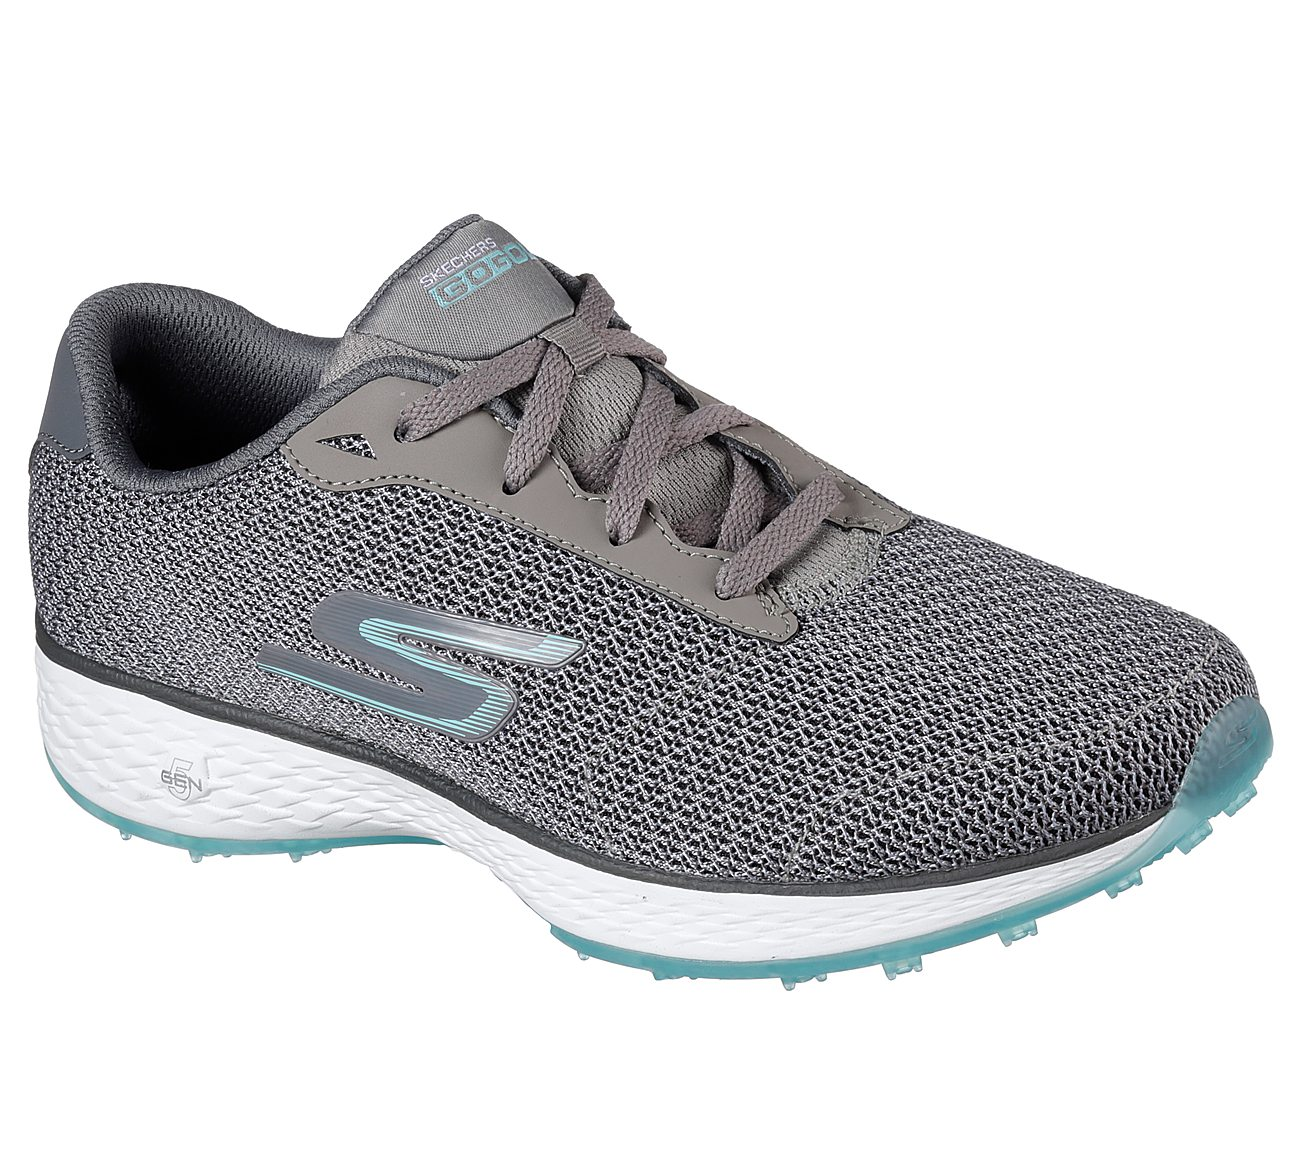 Skechers Go Golf Eagle Range Golf Shoe - Grey/Blue